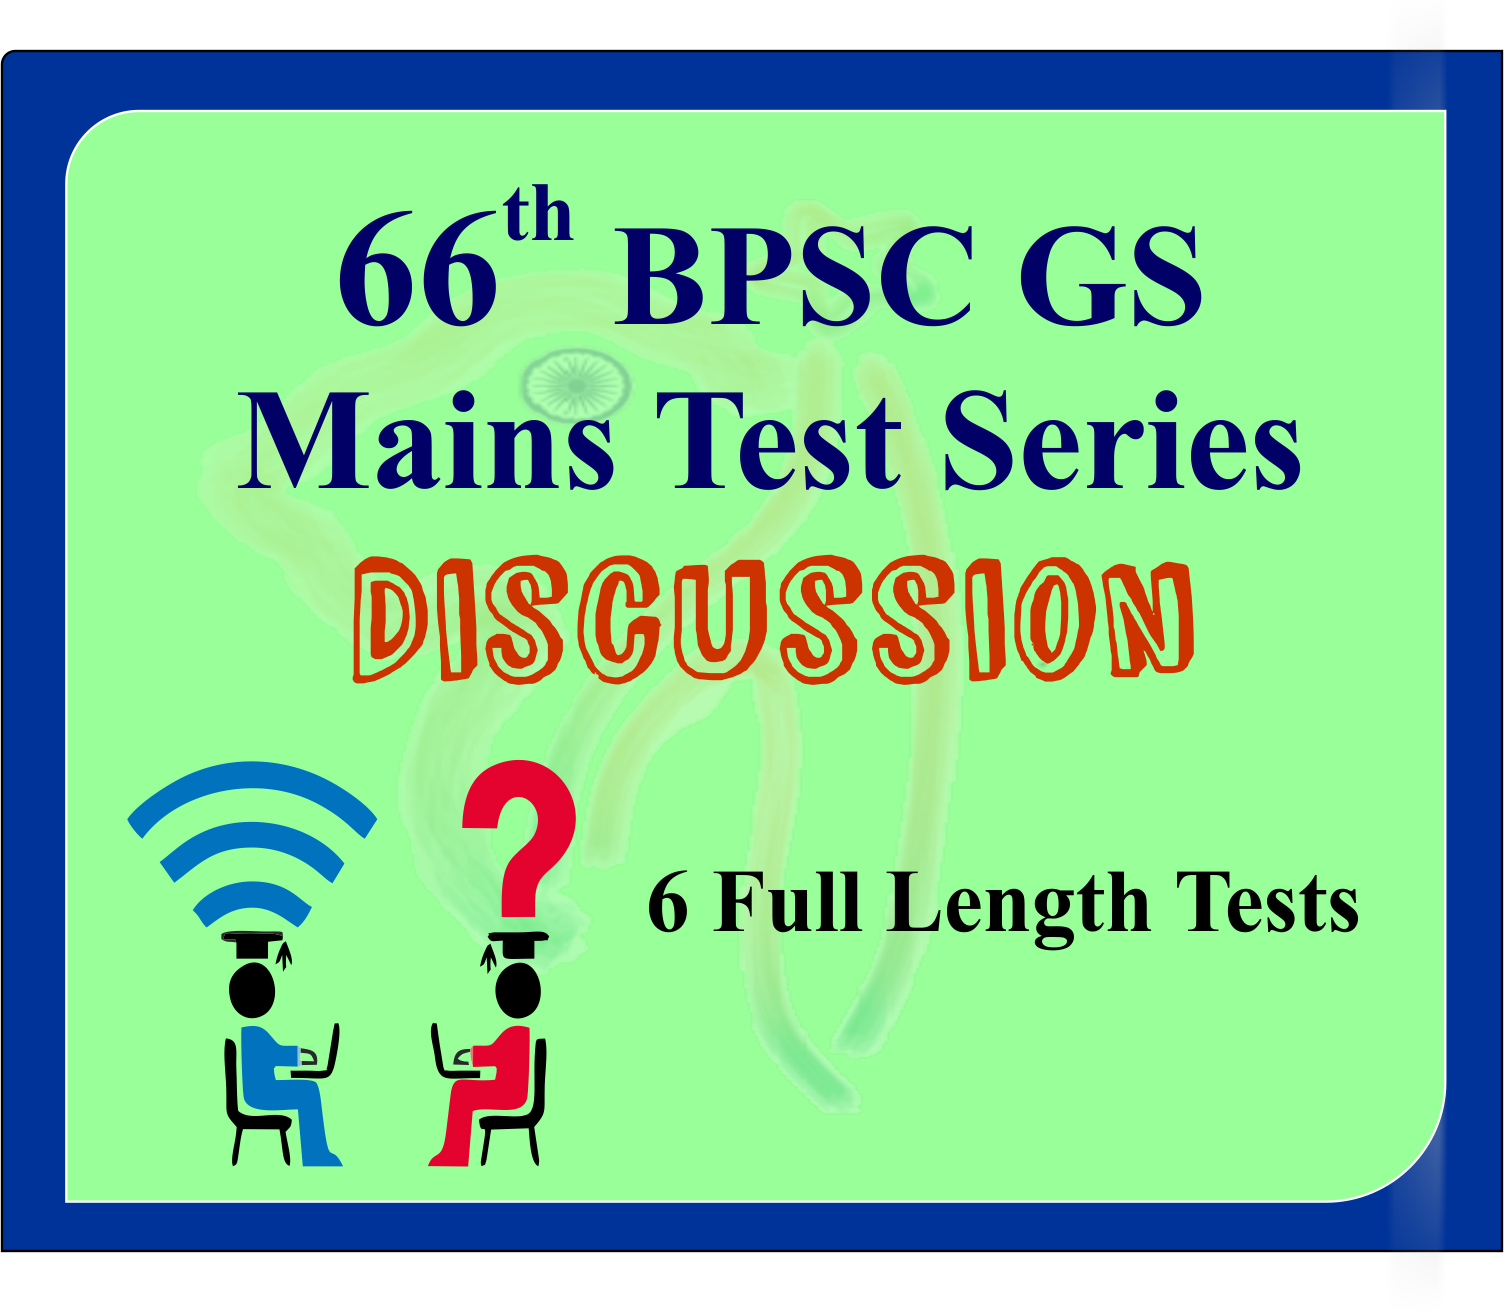 BPSC GS Mains Full Length Test Discussion